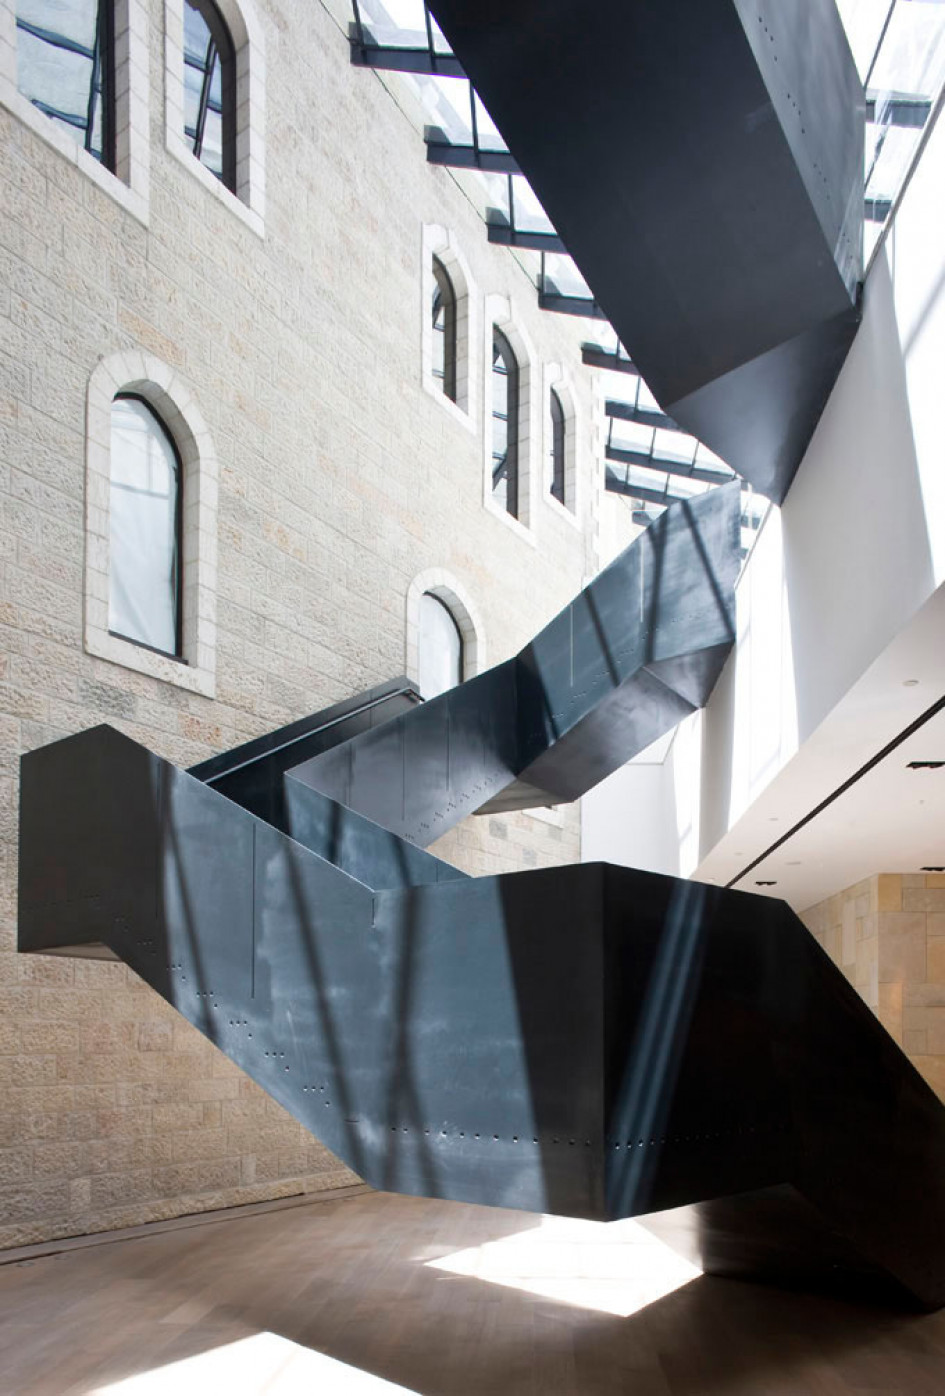 The Mamilla Hotel by Safdie Architects